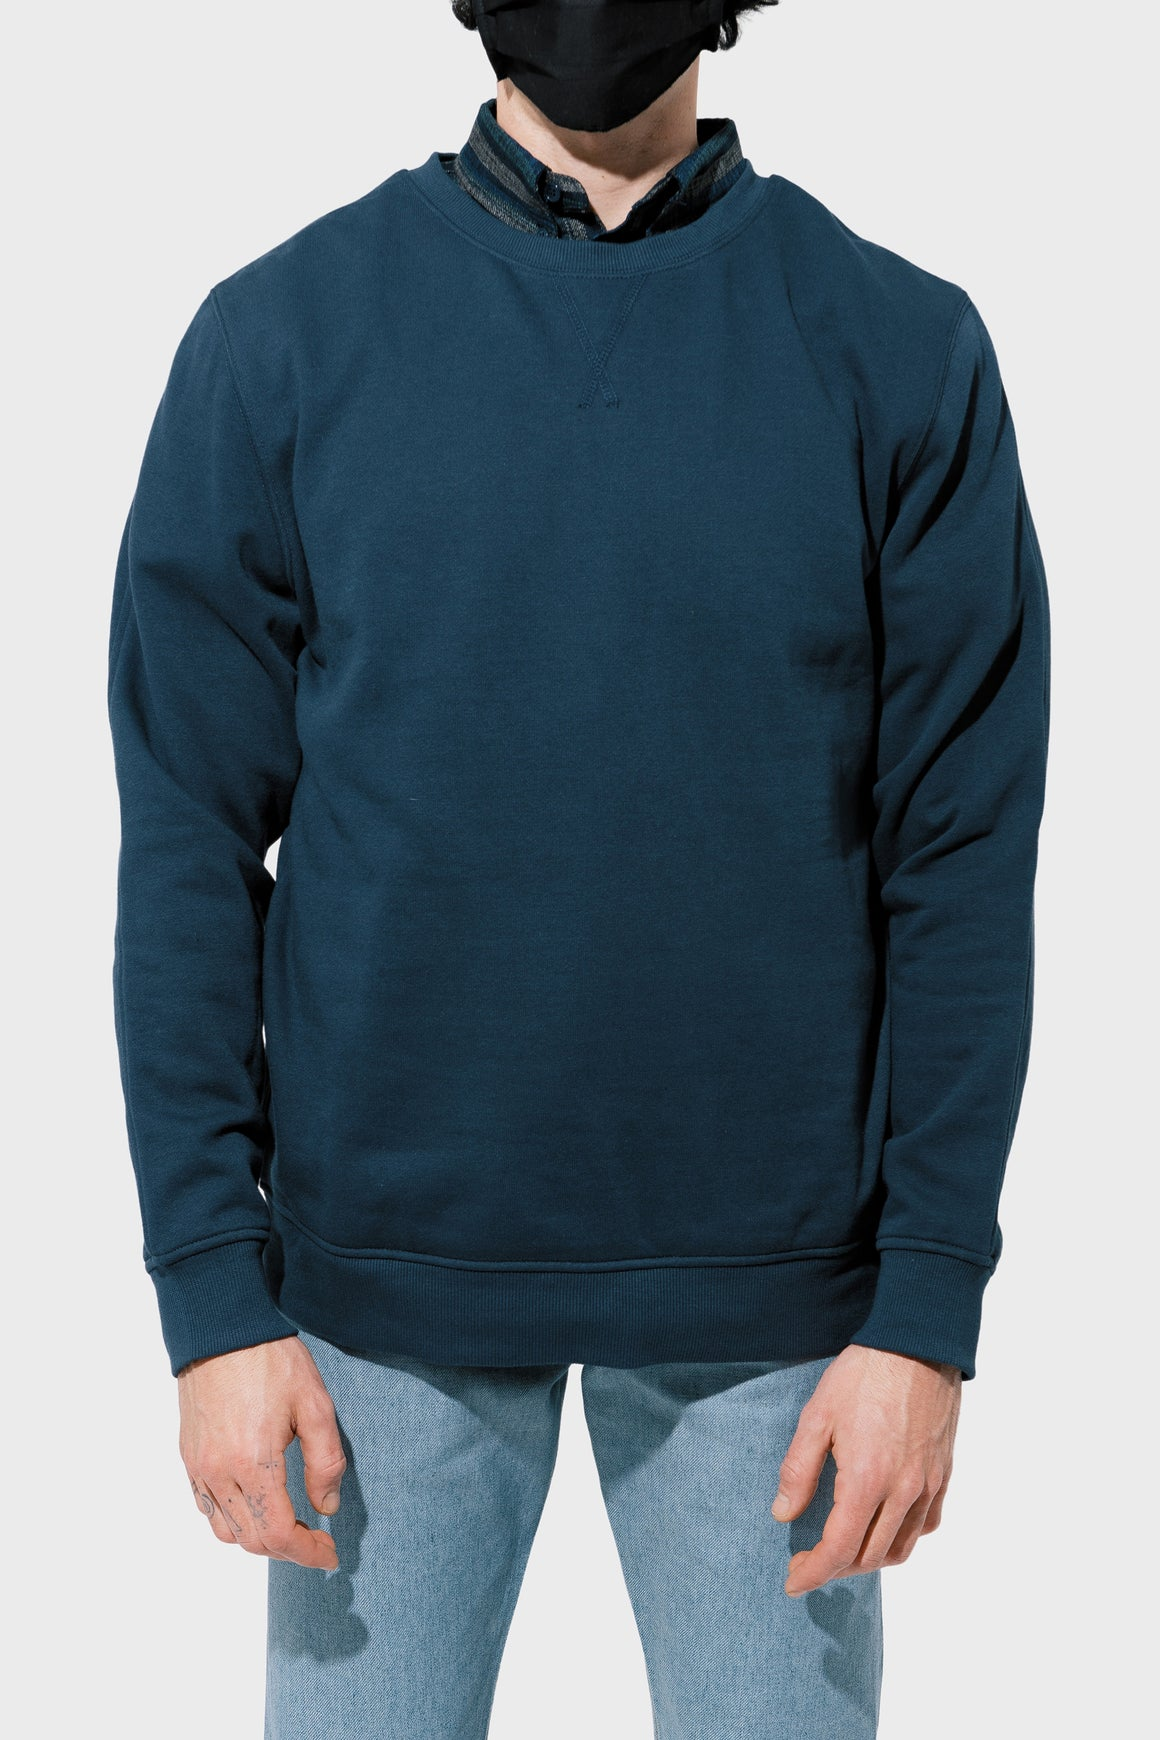 Men's Richer Poorer Crew Sweatshirt in Blue Nights